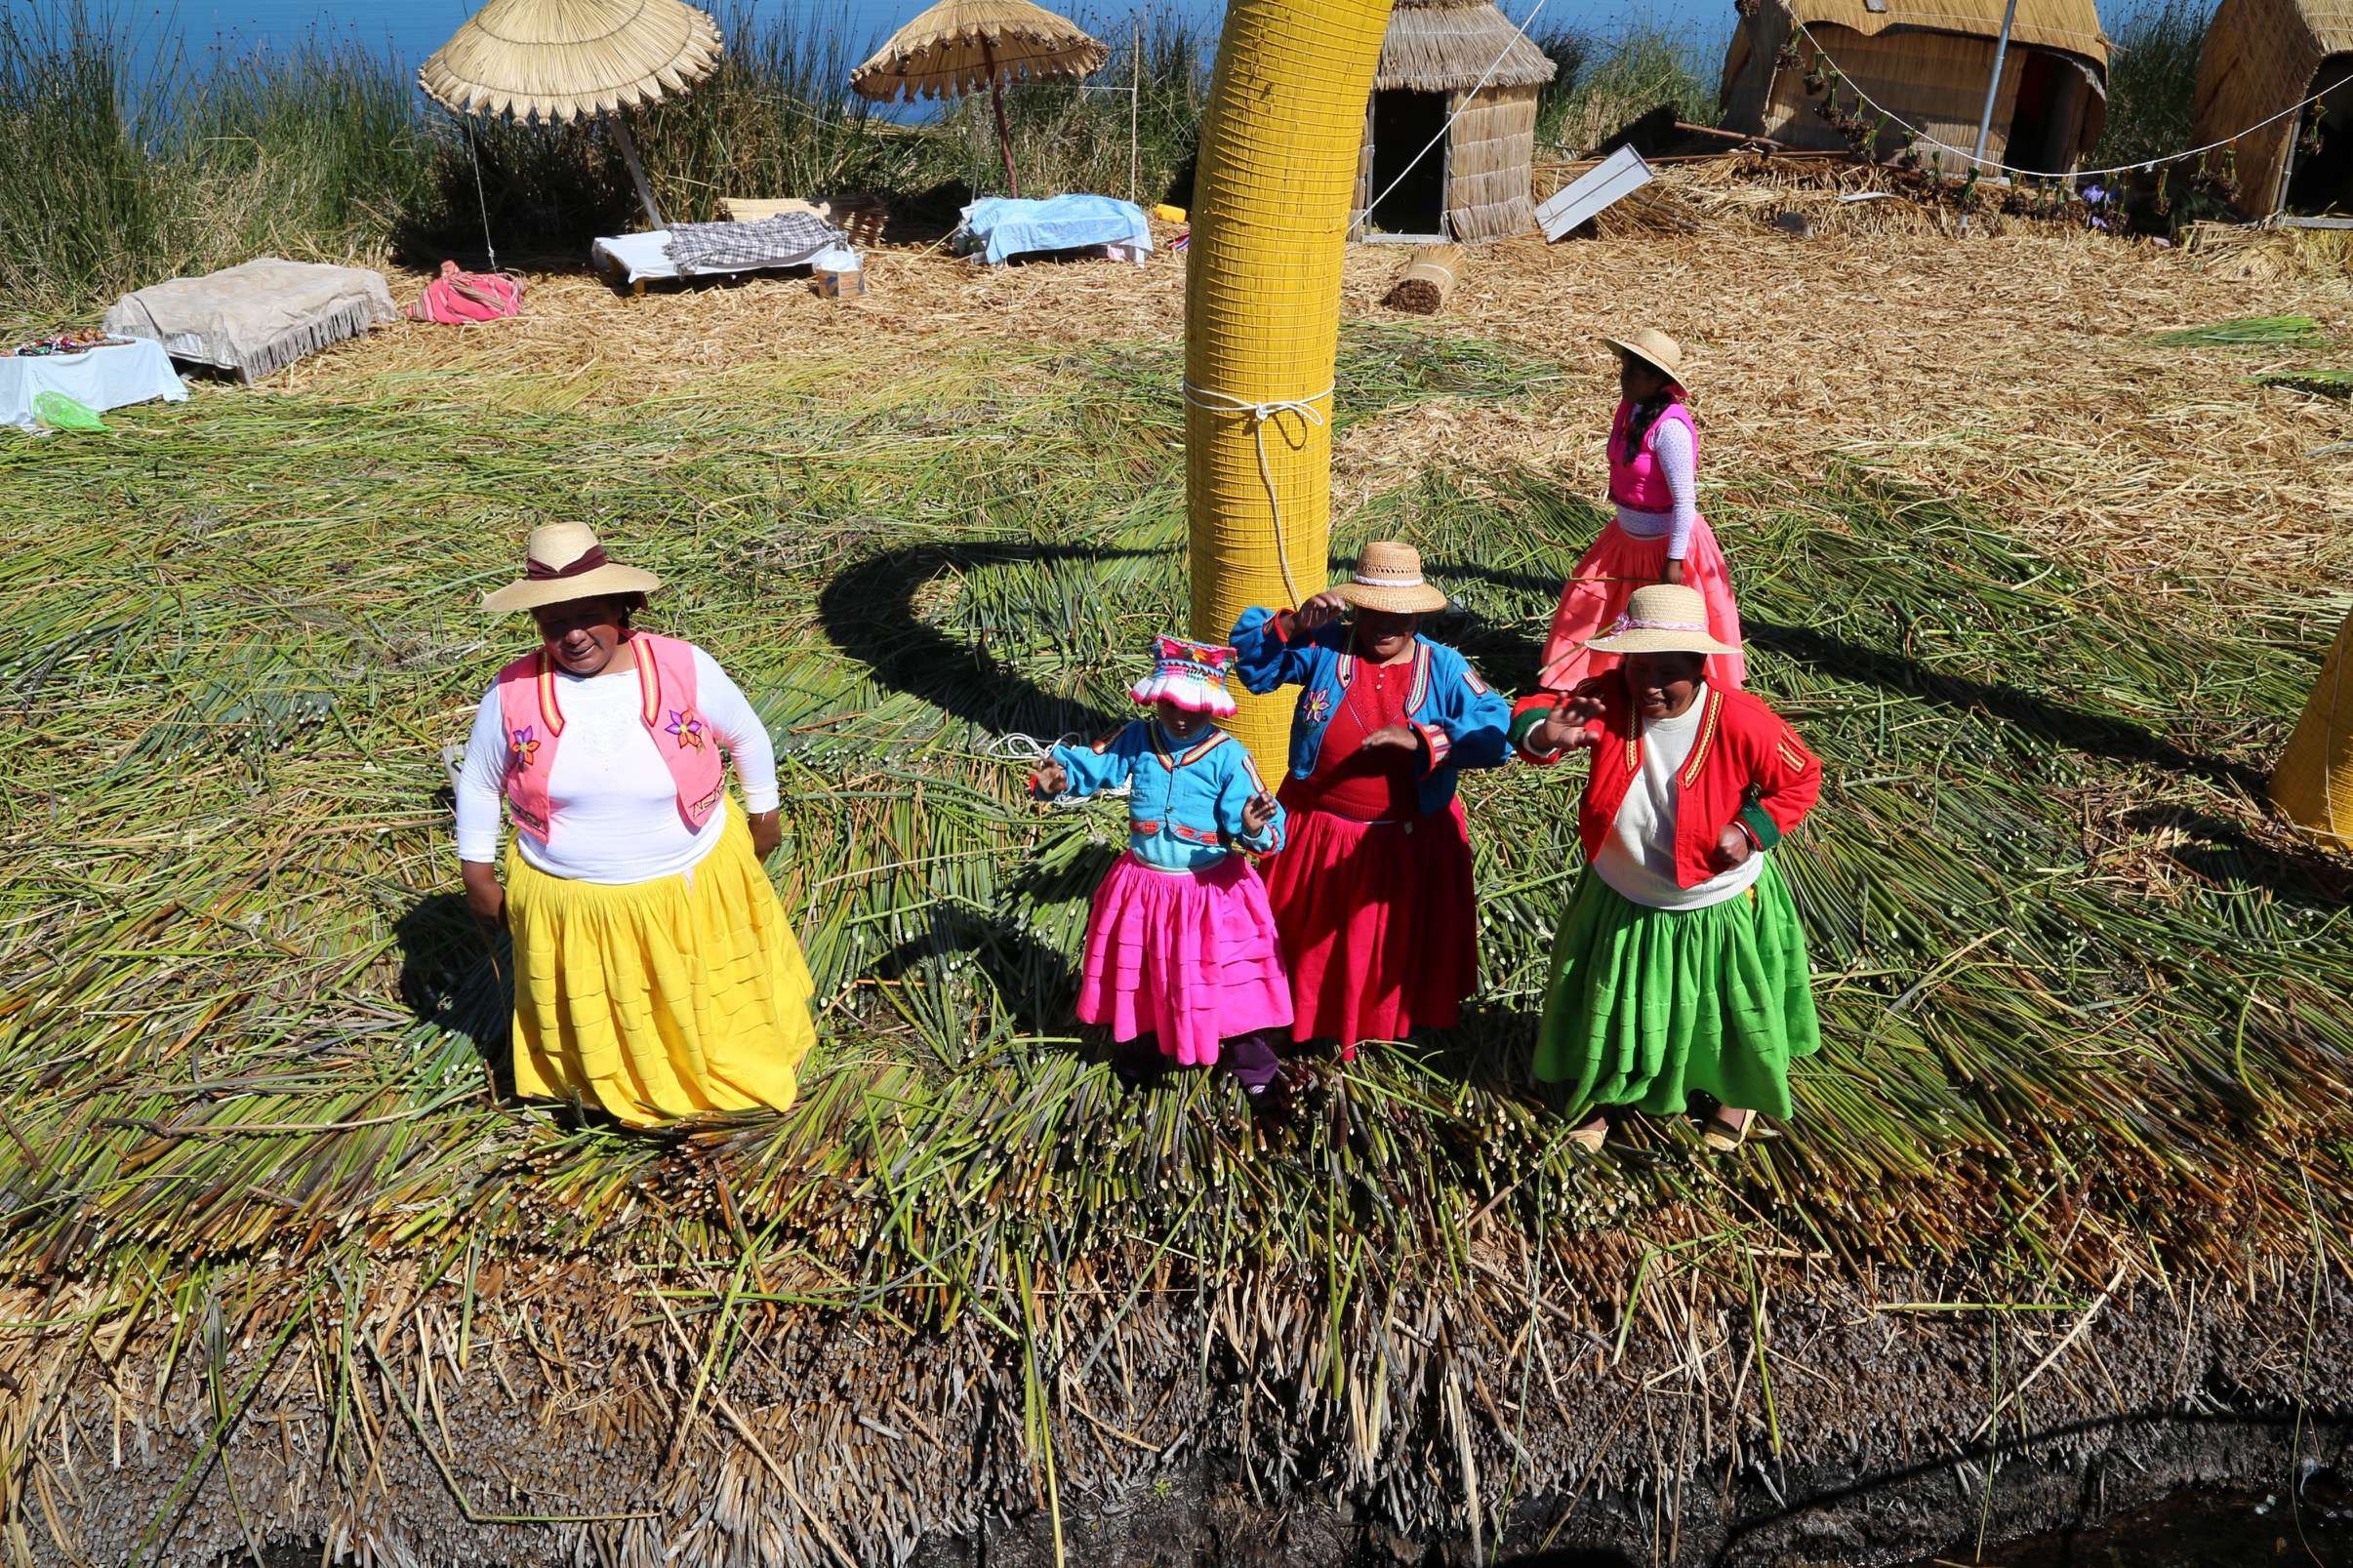 Visitors are greeted by residents dressed in brightly-colored garb.